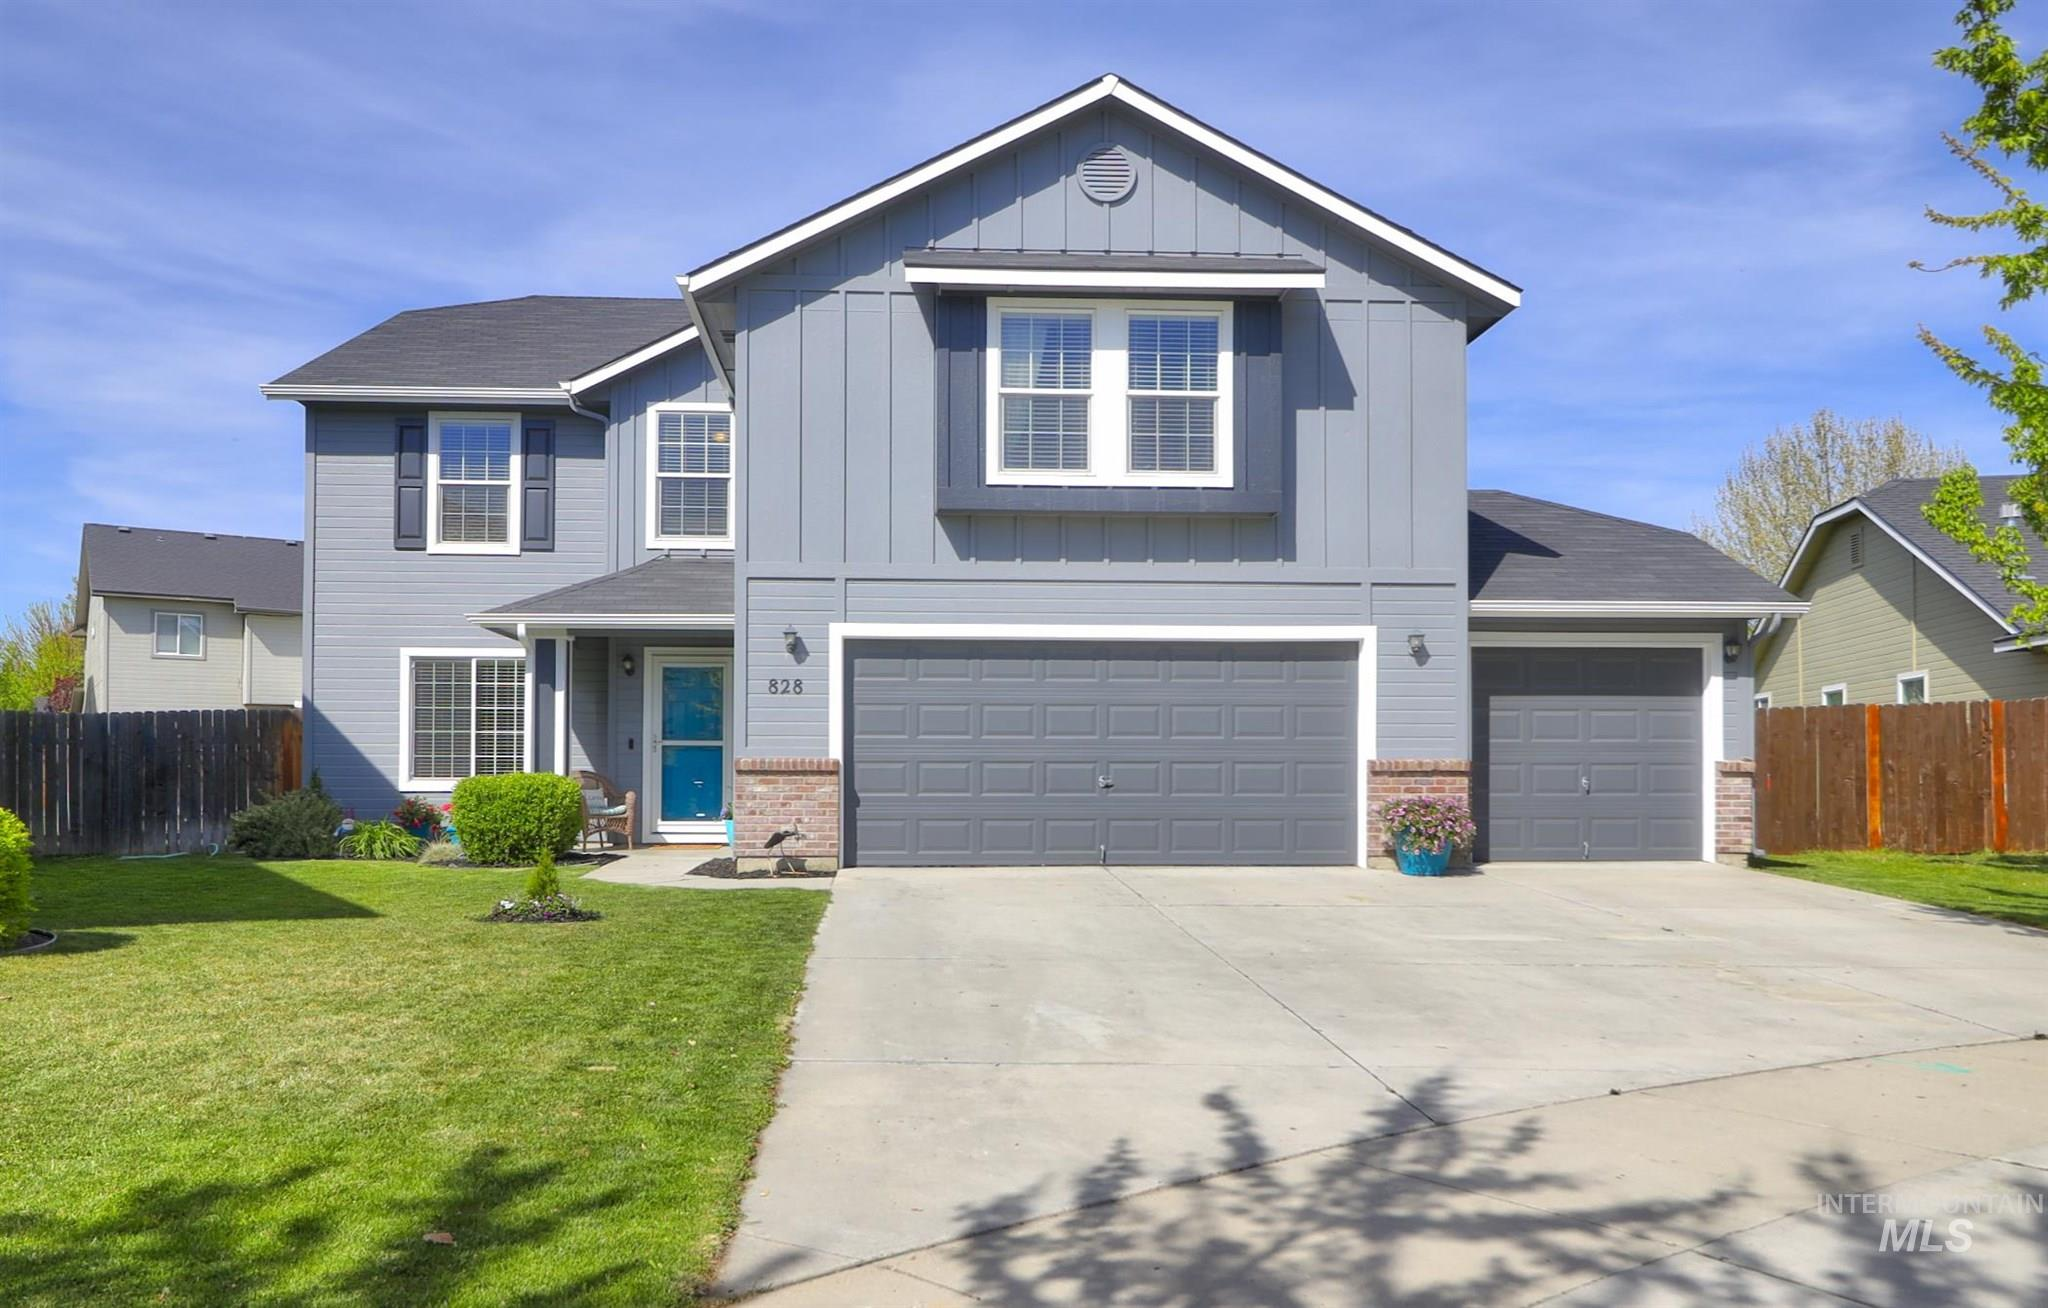 828 W Apple Pine St Property Photo - Meridian, ID real estate listing